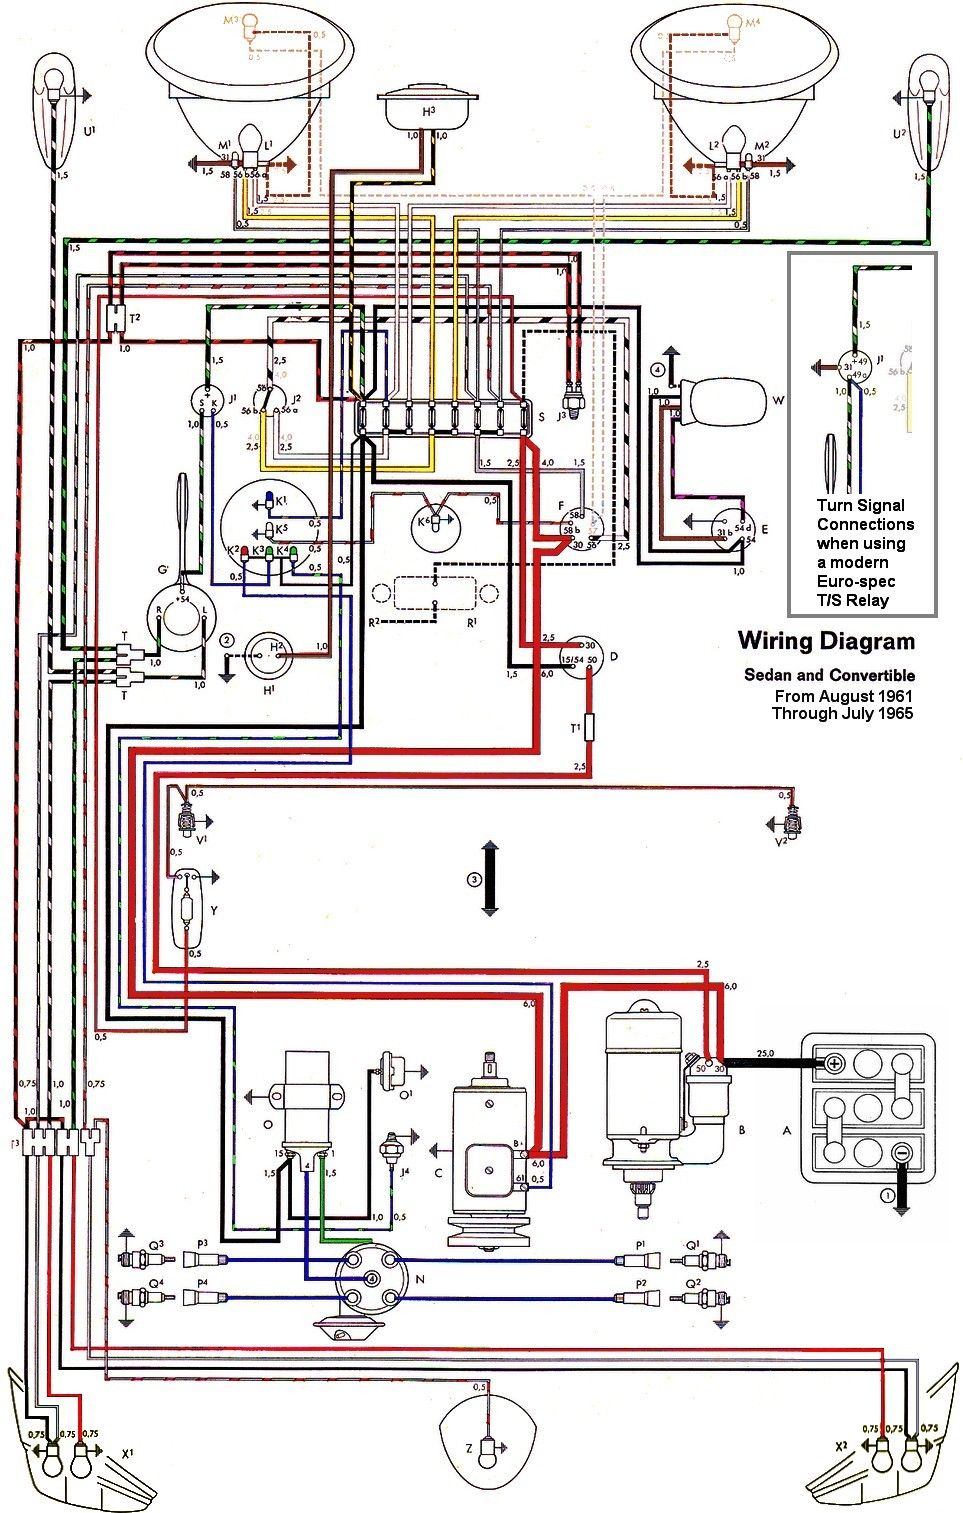 wiring diagram vw beetle sedan and convertible 1961 1965 vw volkswagen amp meter wiring diagram volkswagen wiring diagram [ 963 x 1513 Pixel ]